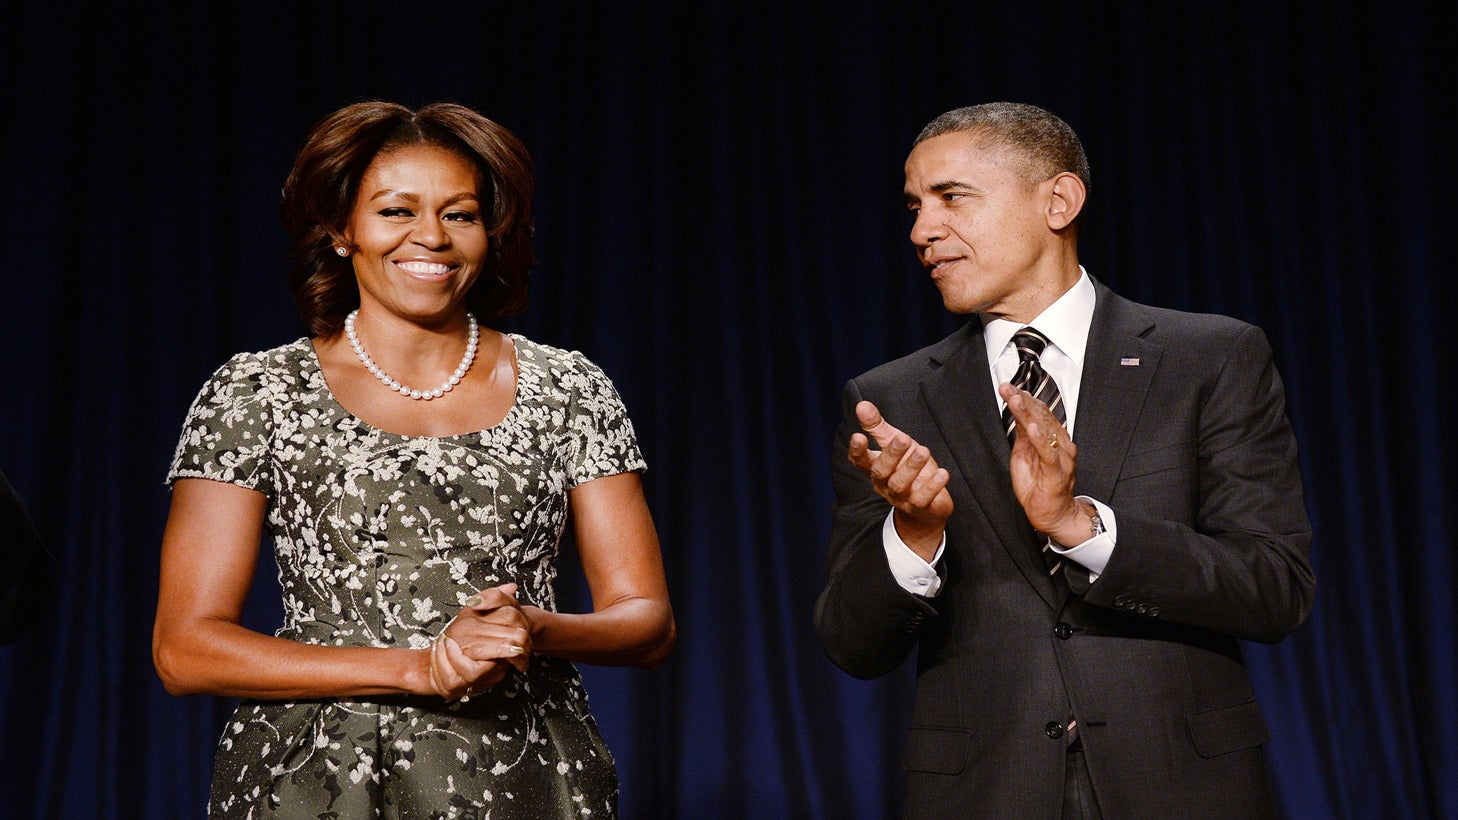 POTUS and Michelle Obama Recount Their Experiences with Racial Profiling